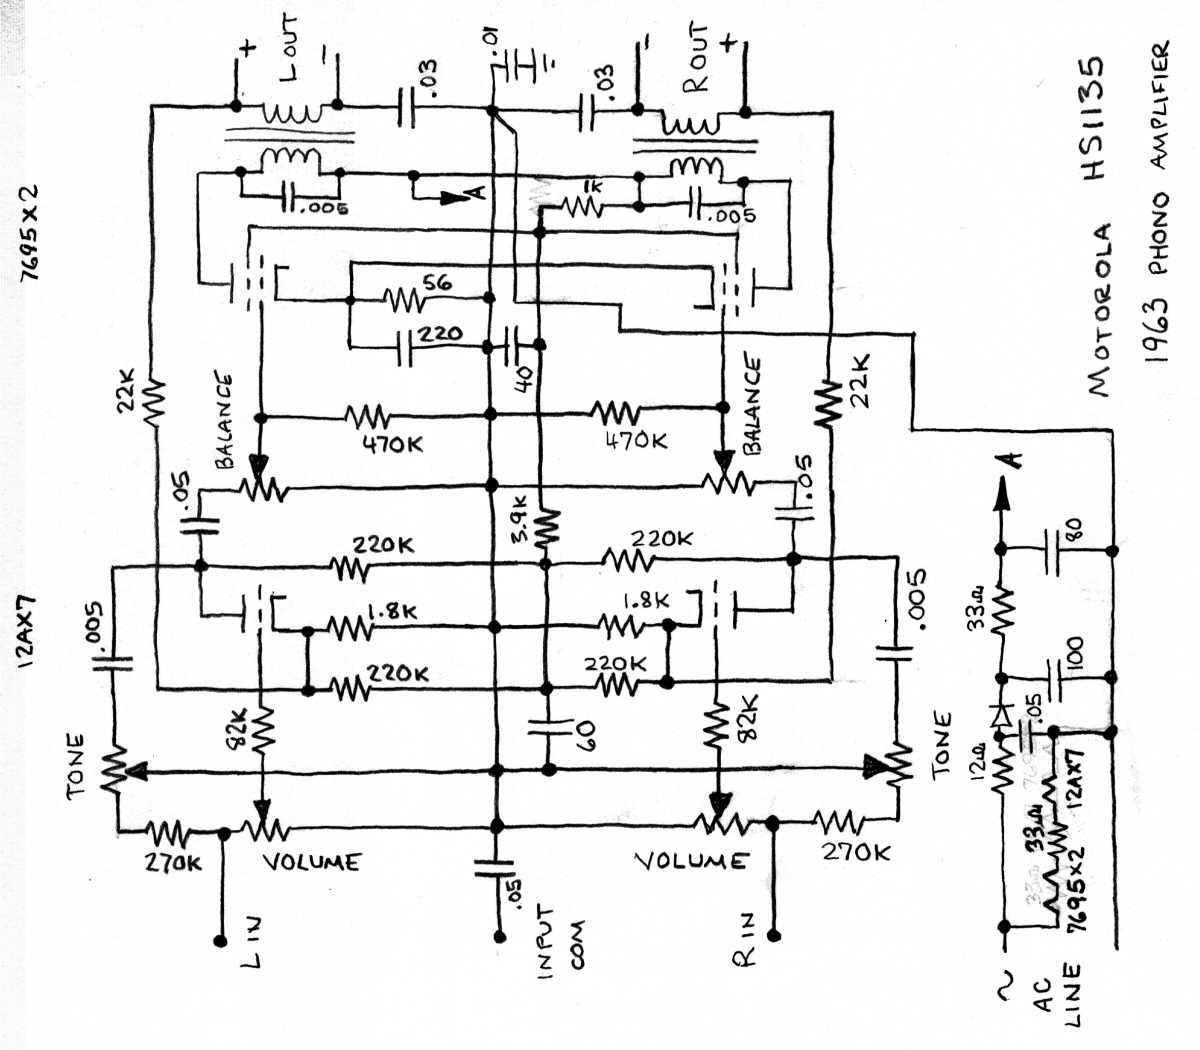 Buku Persamaan Ic Dan Transistor Amplifier Circuits